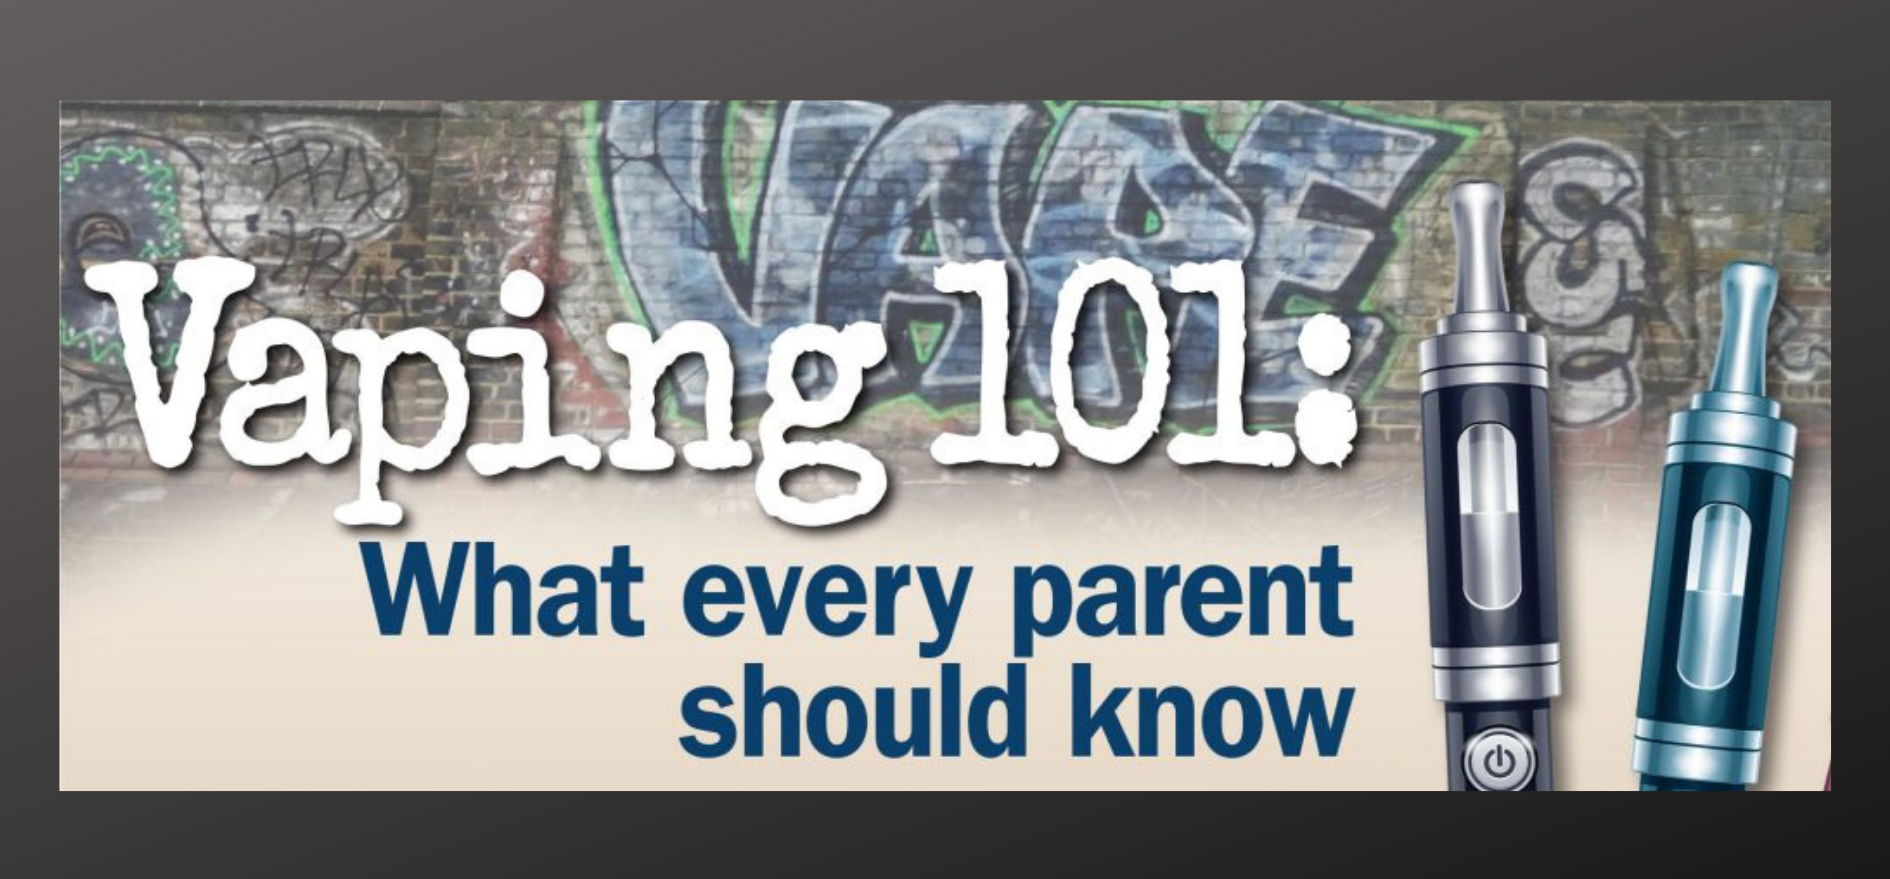 TEXT: Vaping 101: What every parent should know